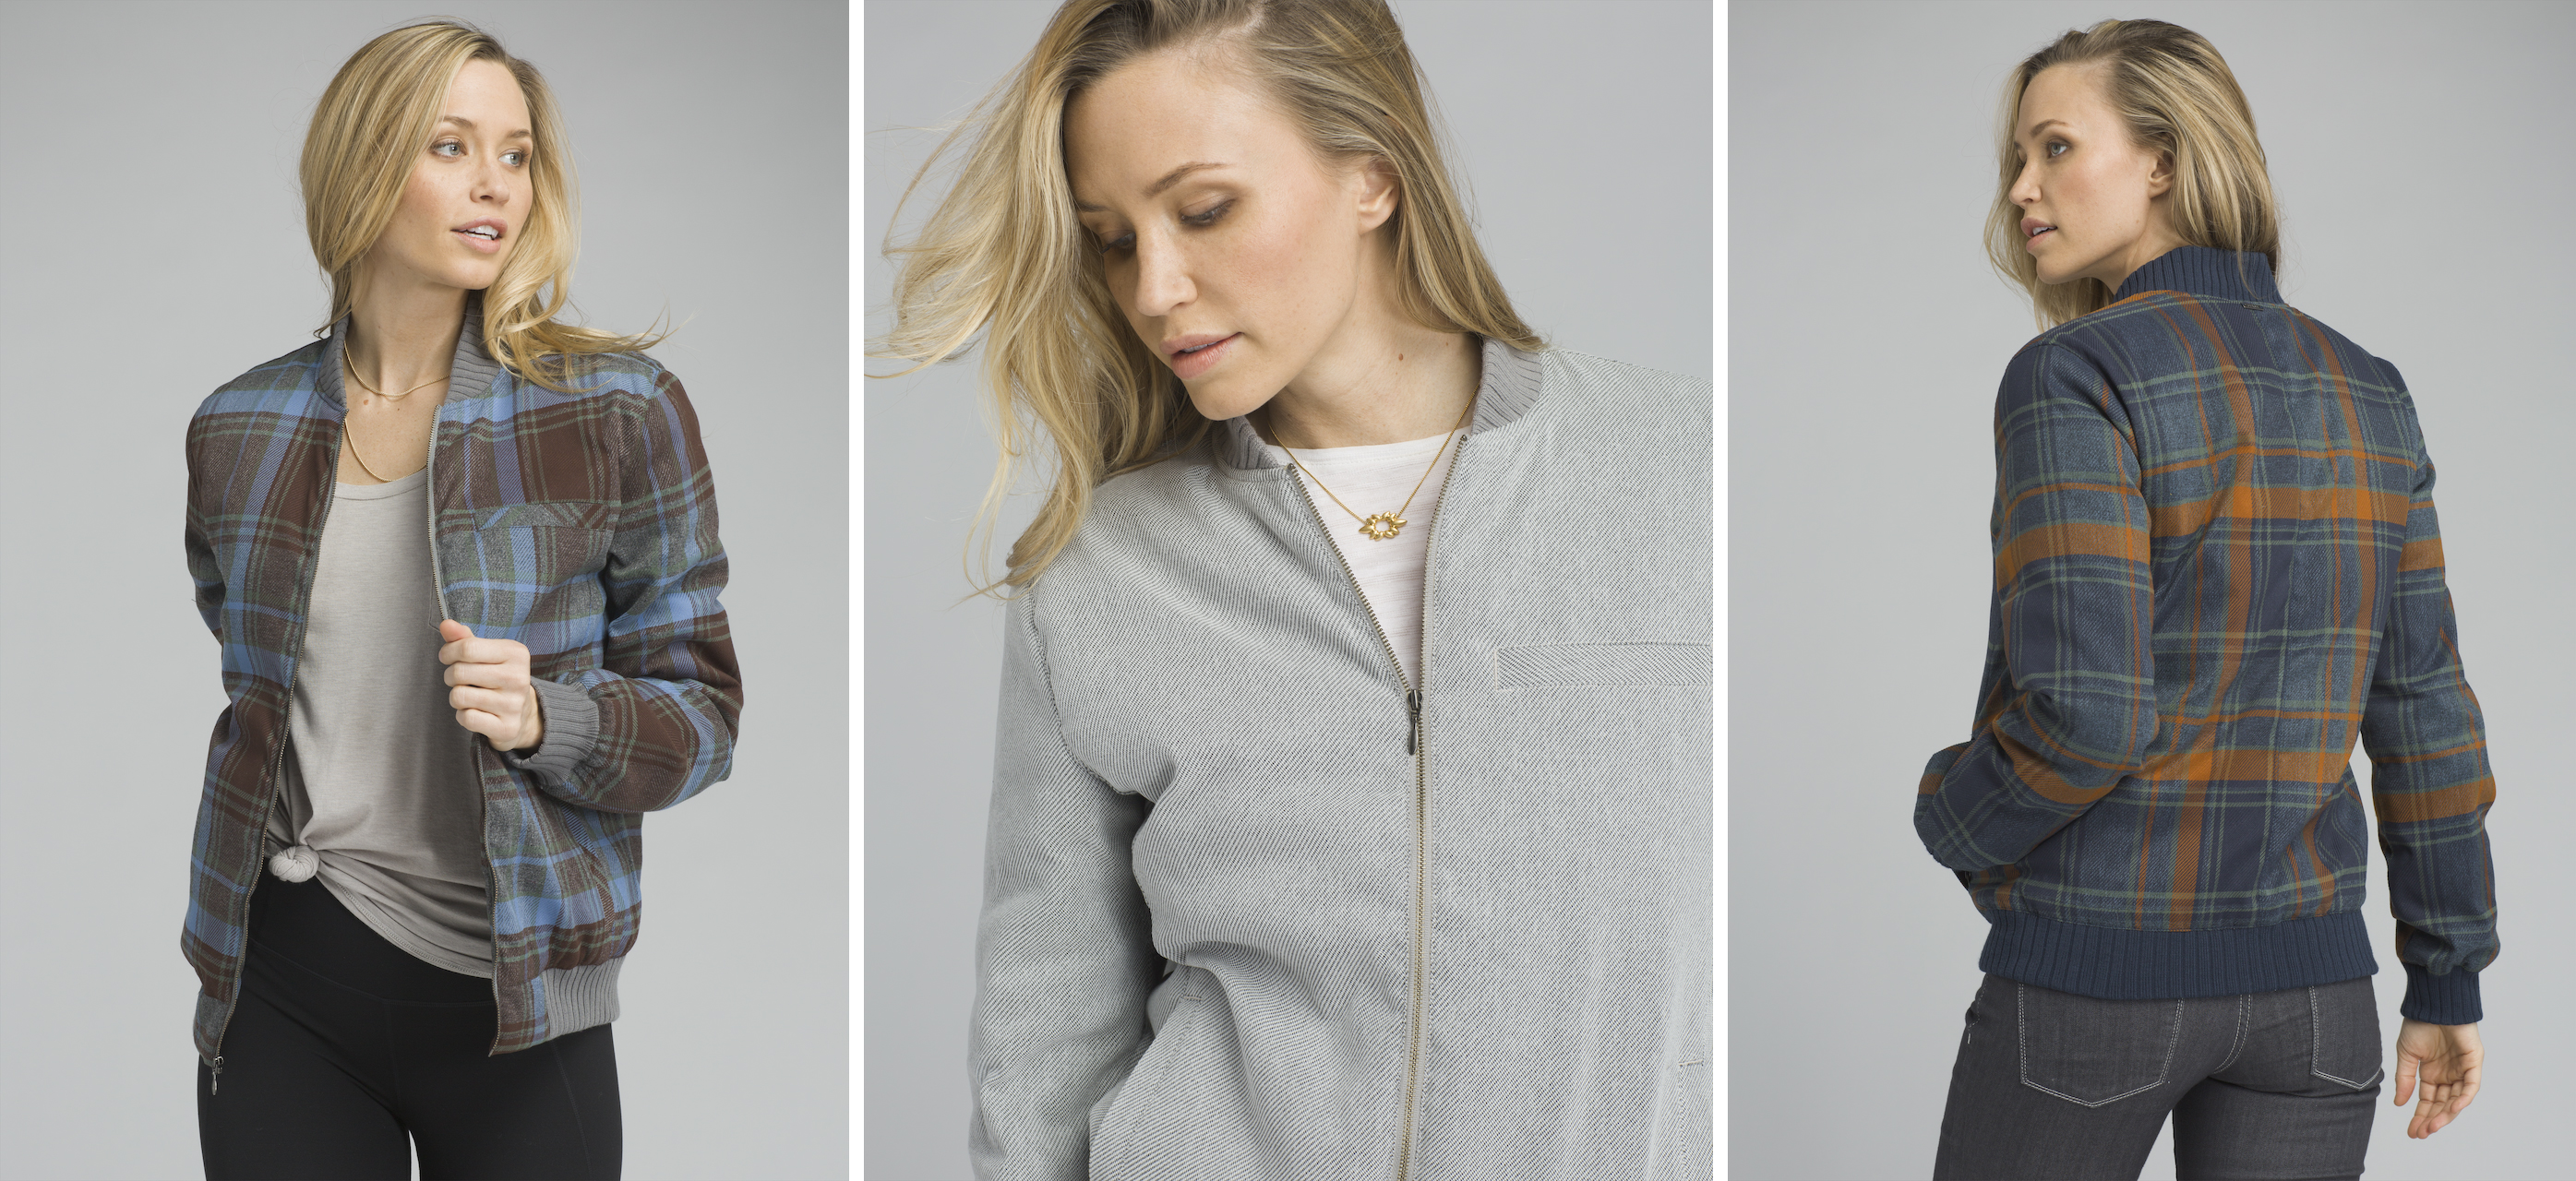 814fc7e70fce5 Like the lululemon About-Face Bomber above, prAna's Showdown Bomber Jacket  is stuffed with down insulation. The jacket meets Responsible Down Standard  ...